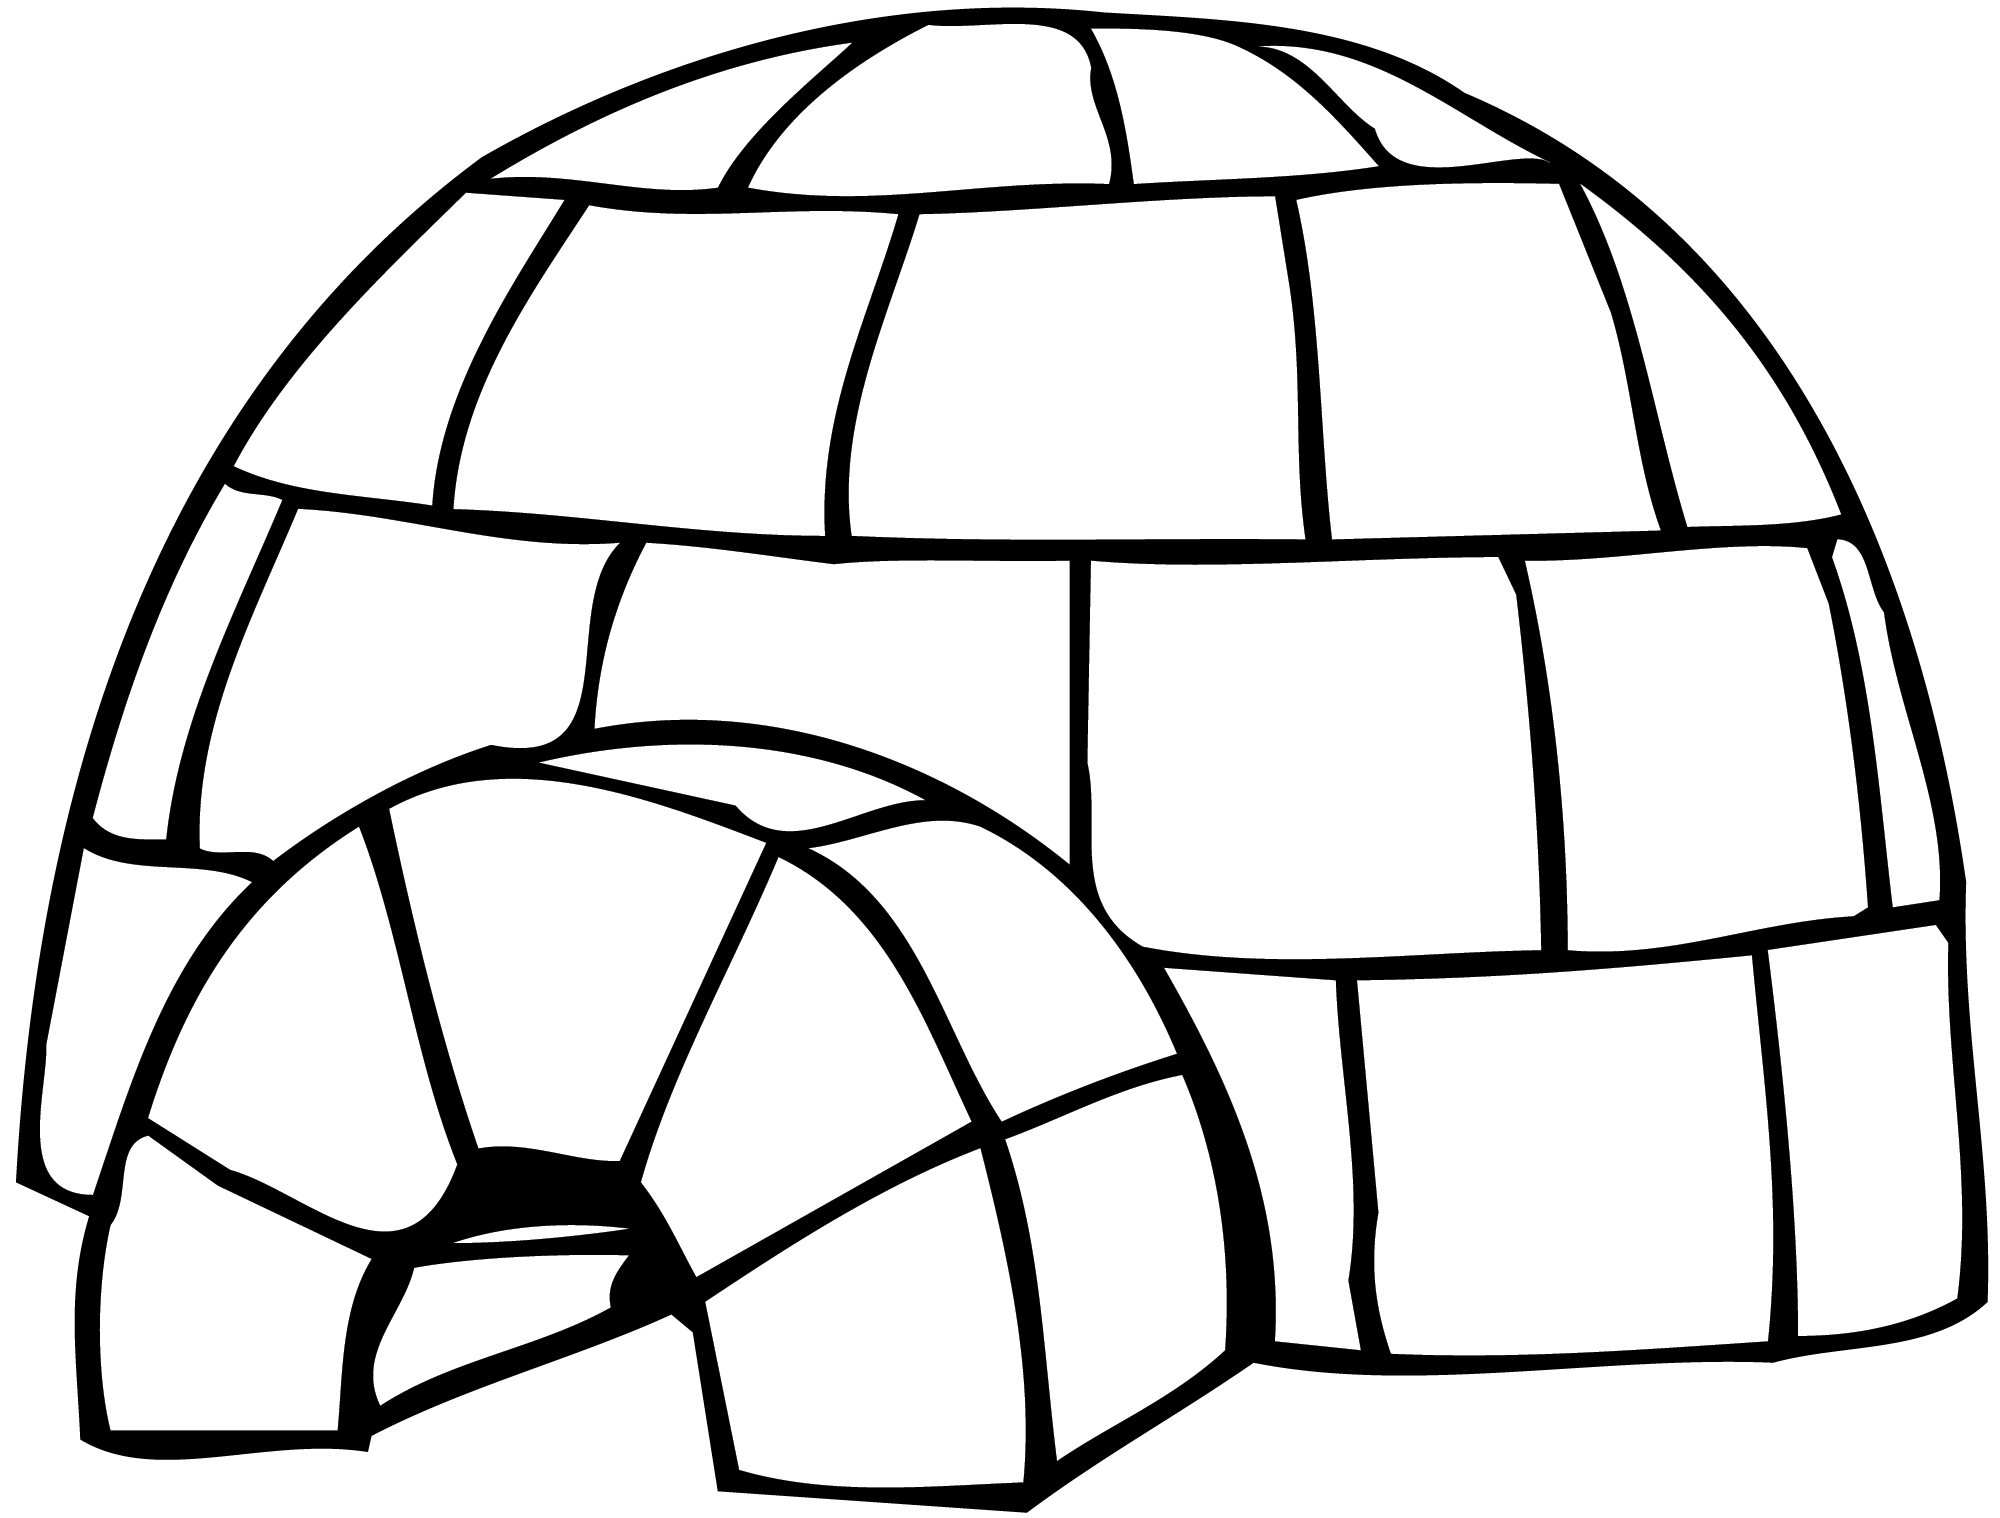 Igloo #2 (Bâtiments Et Architecture) – Coloriages À Imprimer serapportantà Coloriage Igloo